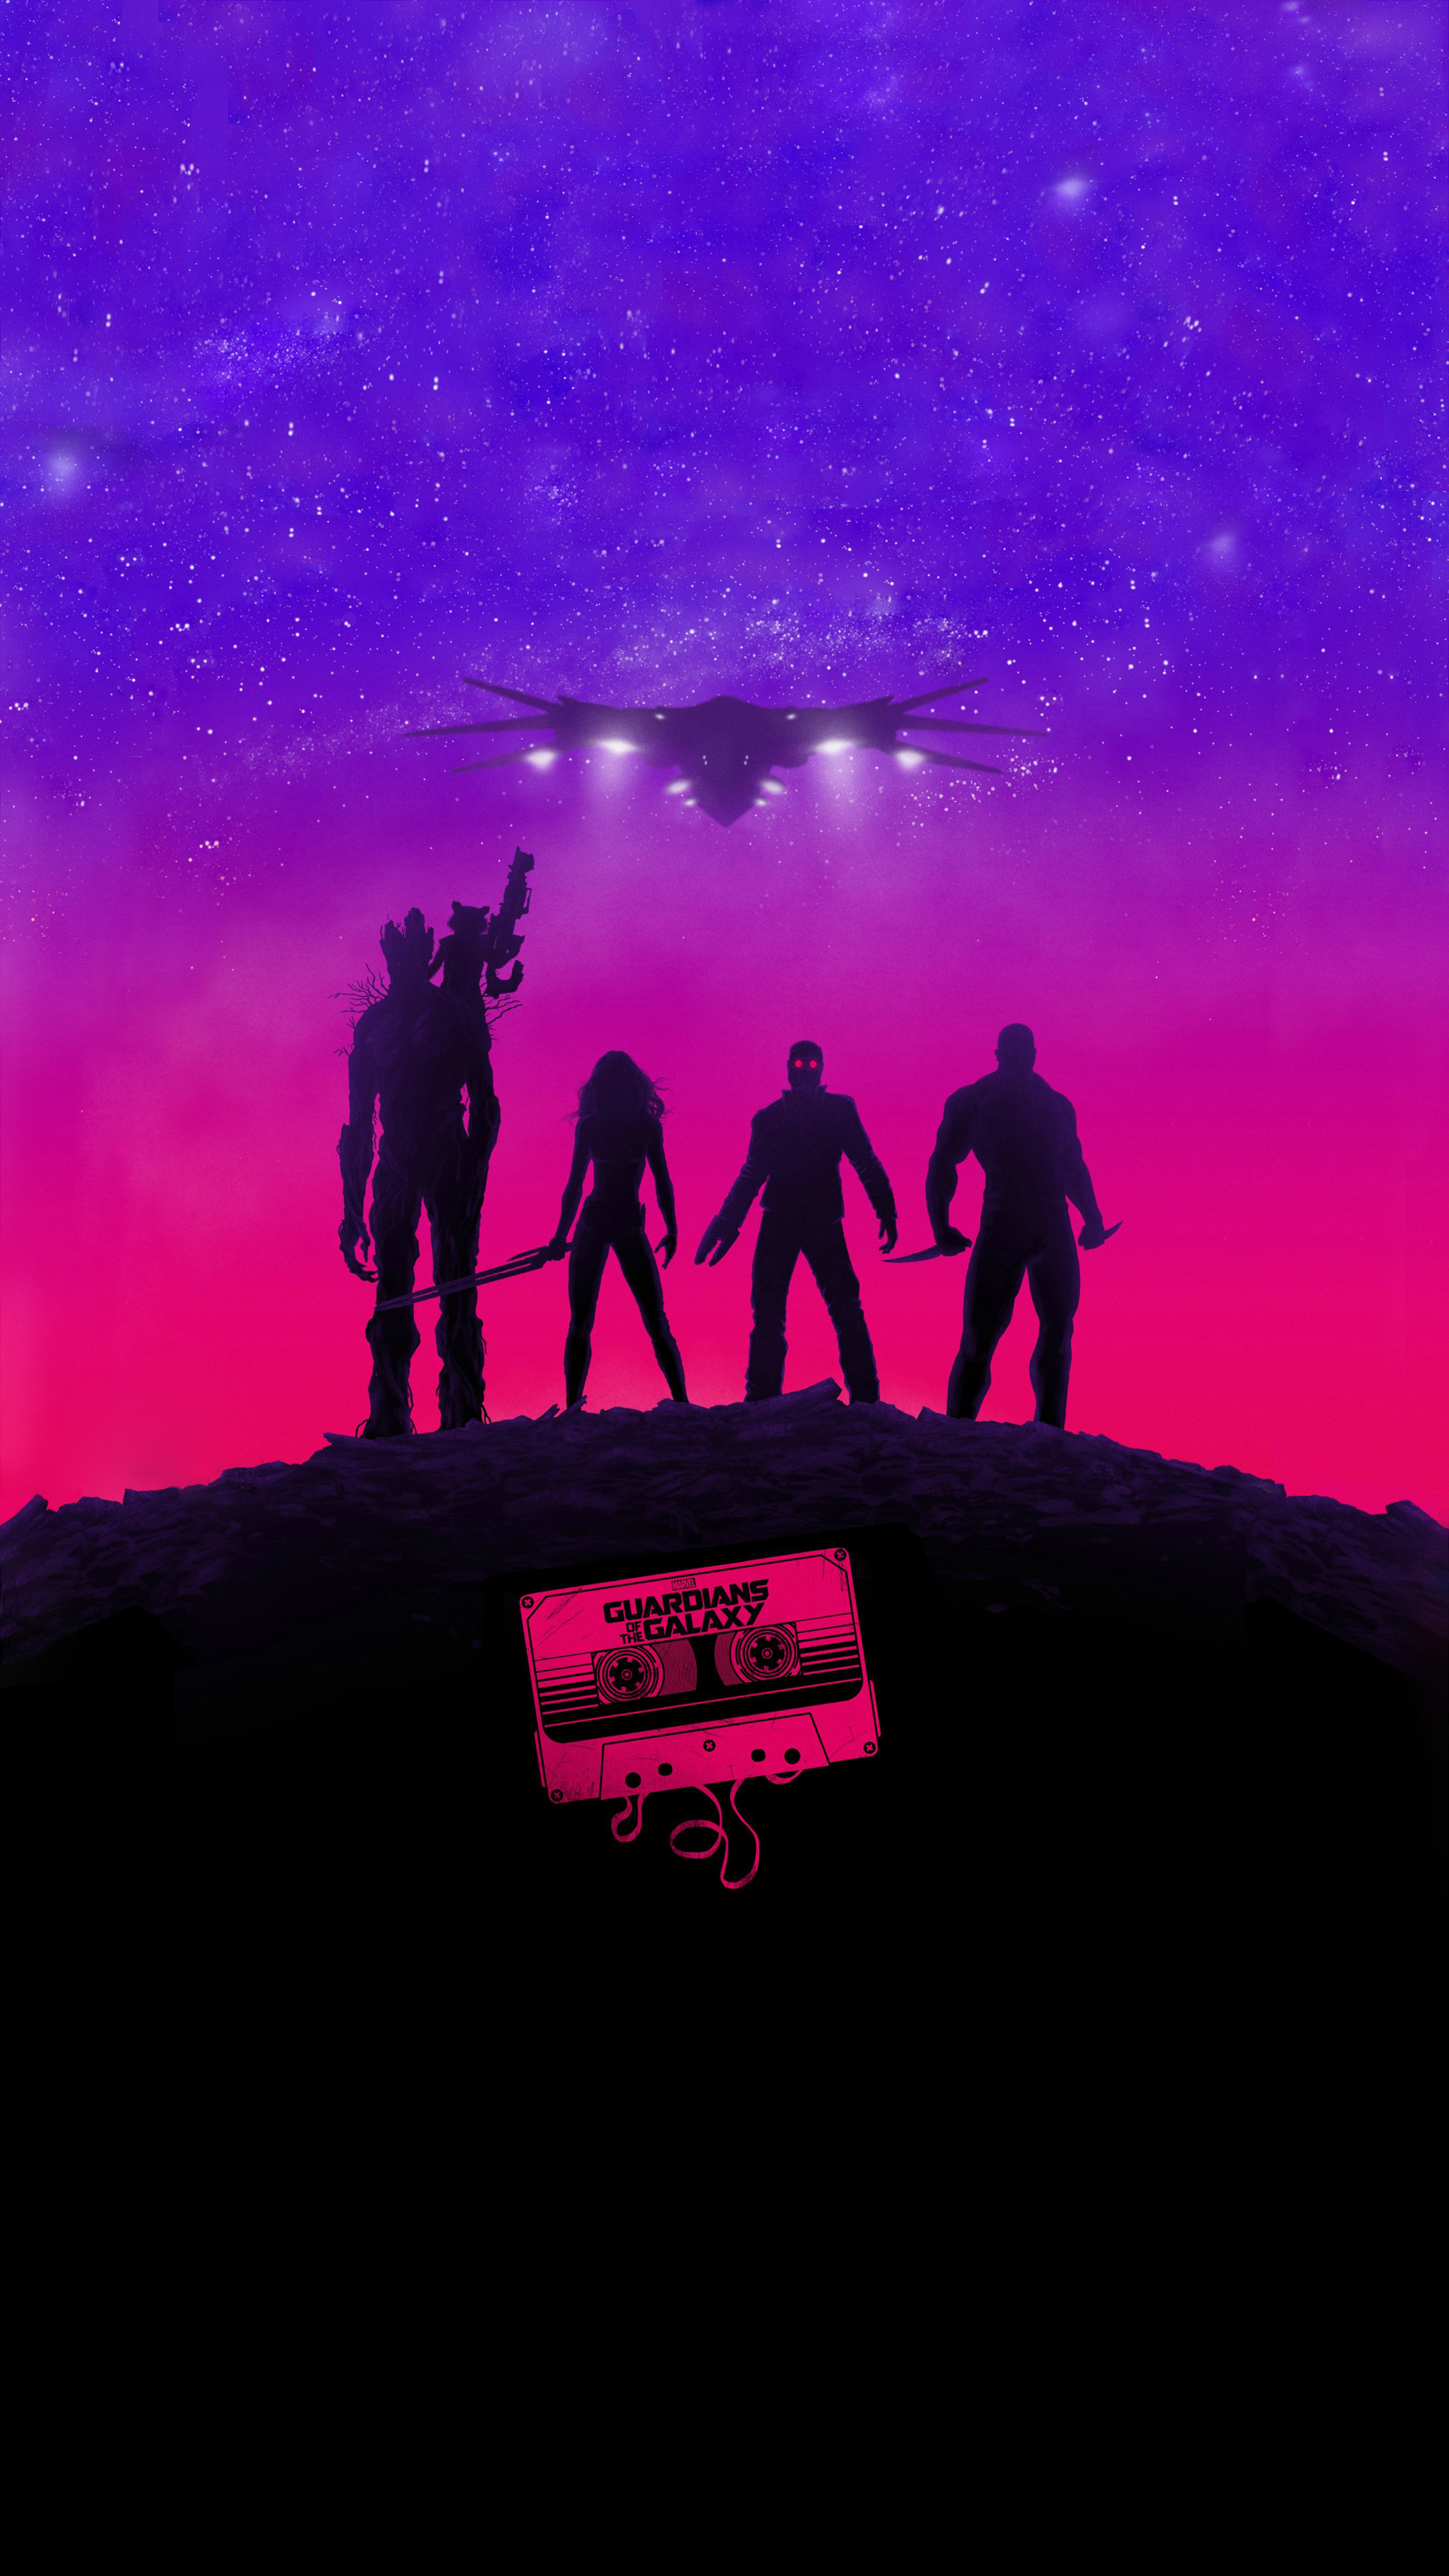 50 Phone Wallpapers   Data-src - Guardians Of The Galaxy 2 Android - HD Wallpaper